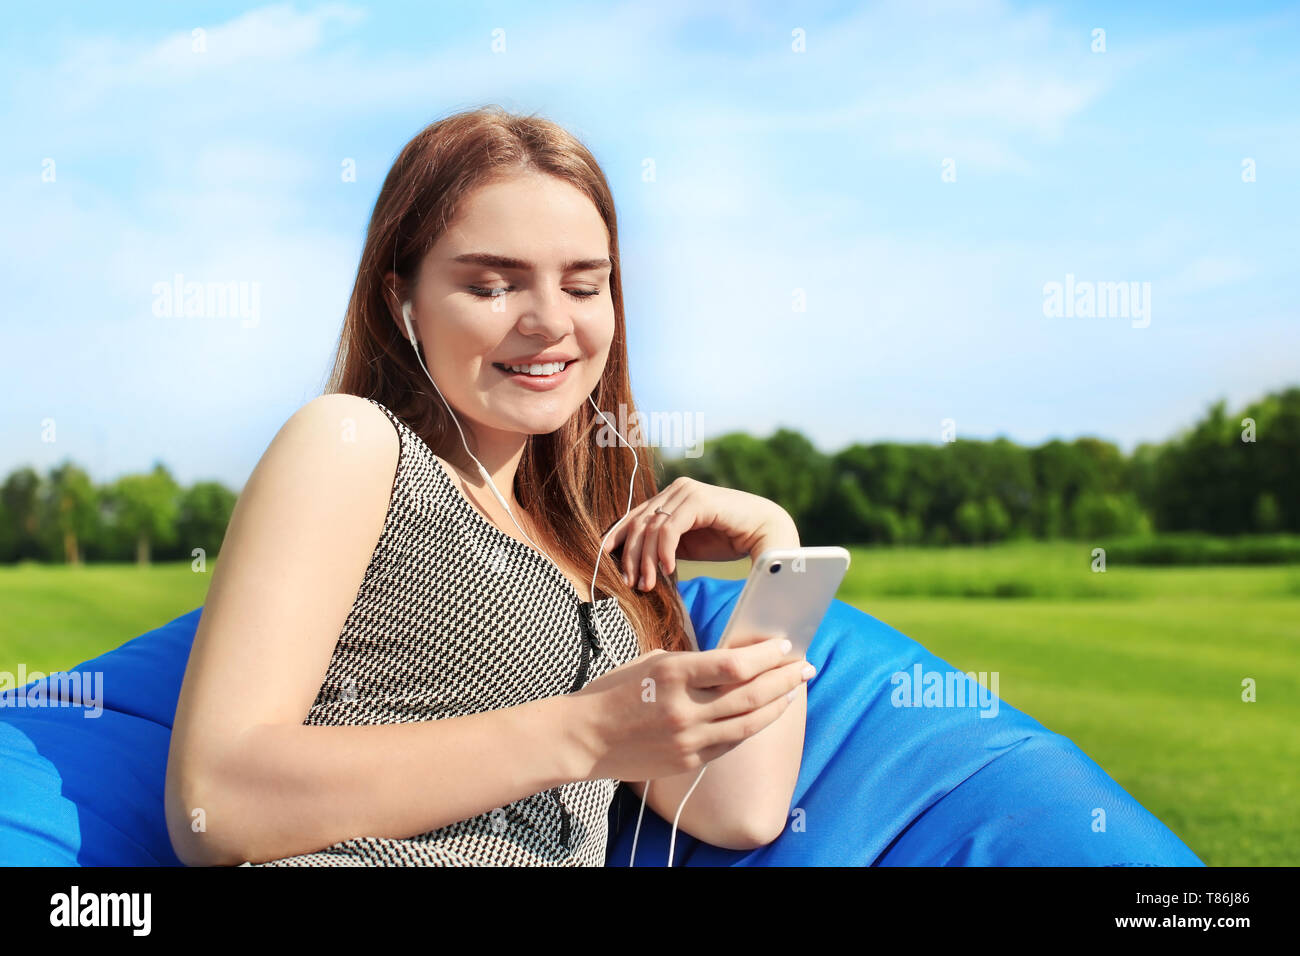 Young woman listening to music while sitting on bean bag chair outdoors - Stock Image